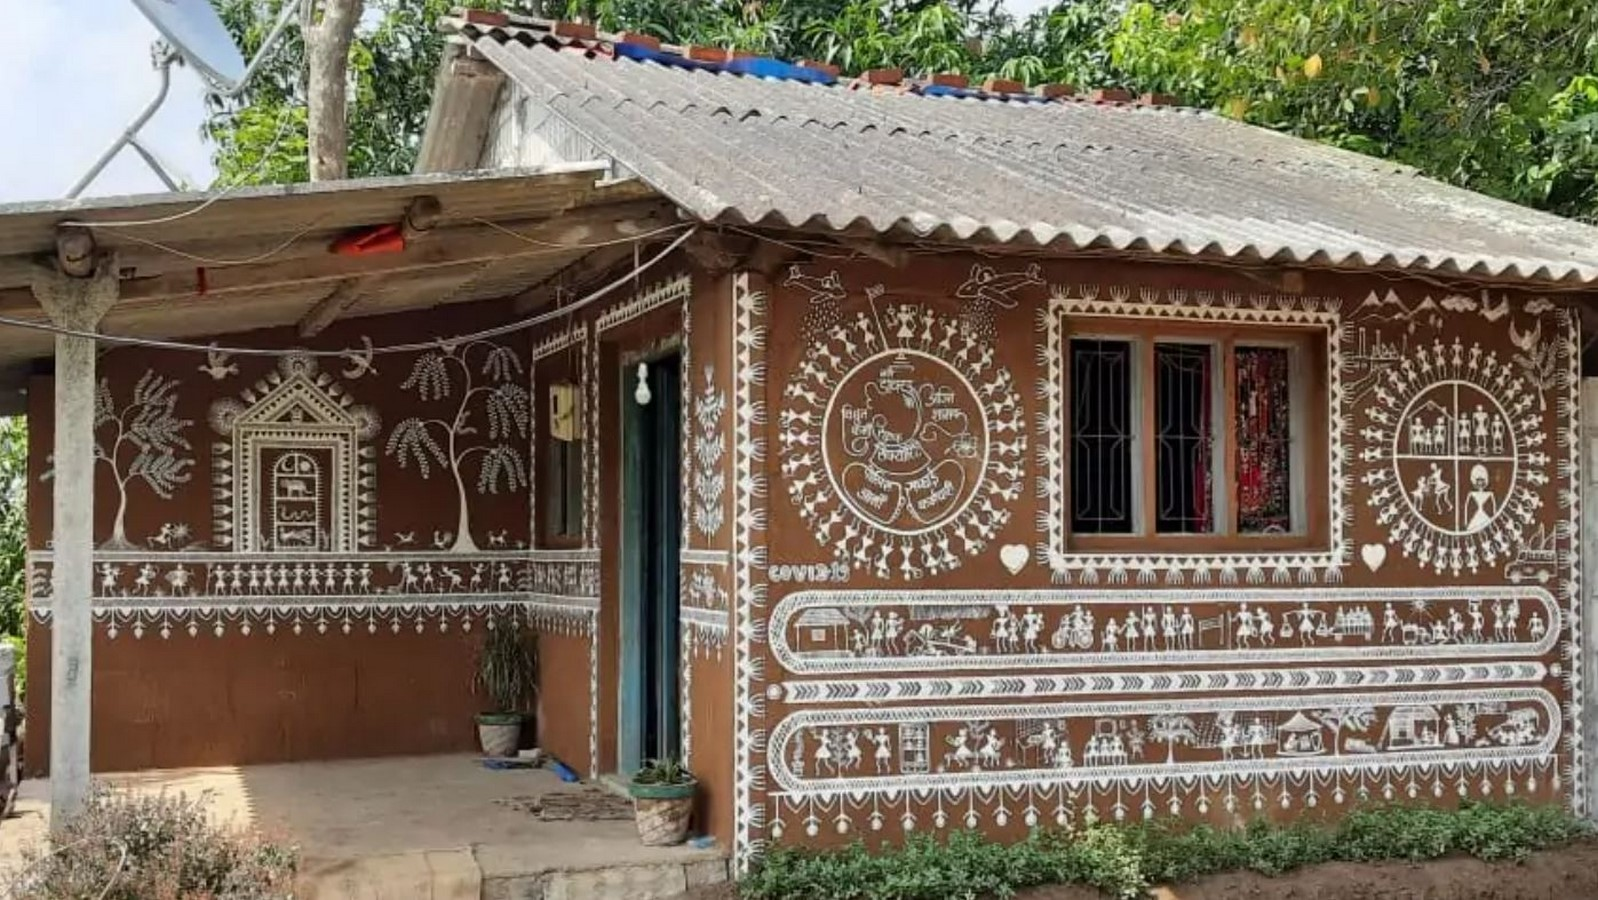 10 Inspirational Indian Mural Architecture - Sheet7